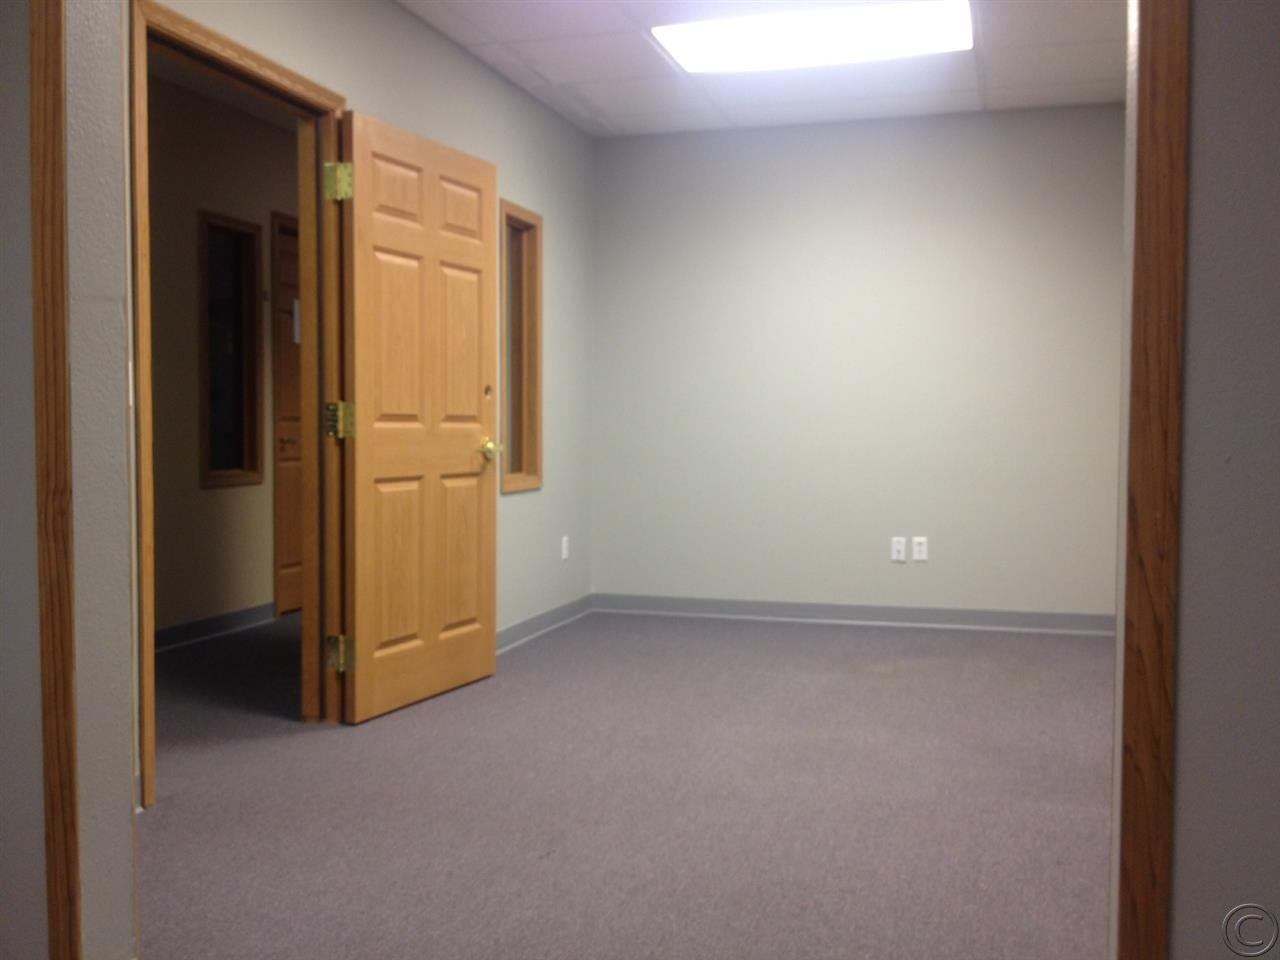 Rental Homes for Rent, ListingId:25528564, location: 2409 Dearborn Suite J1 C&D Missoula 59801